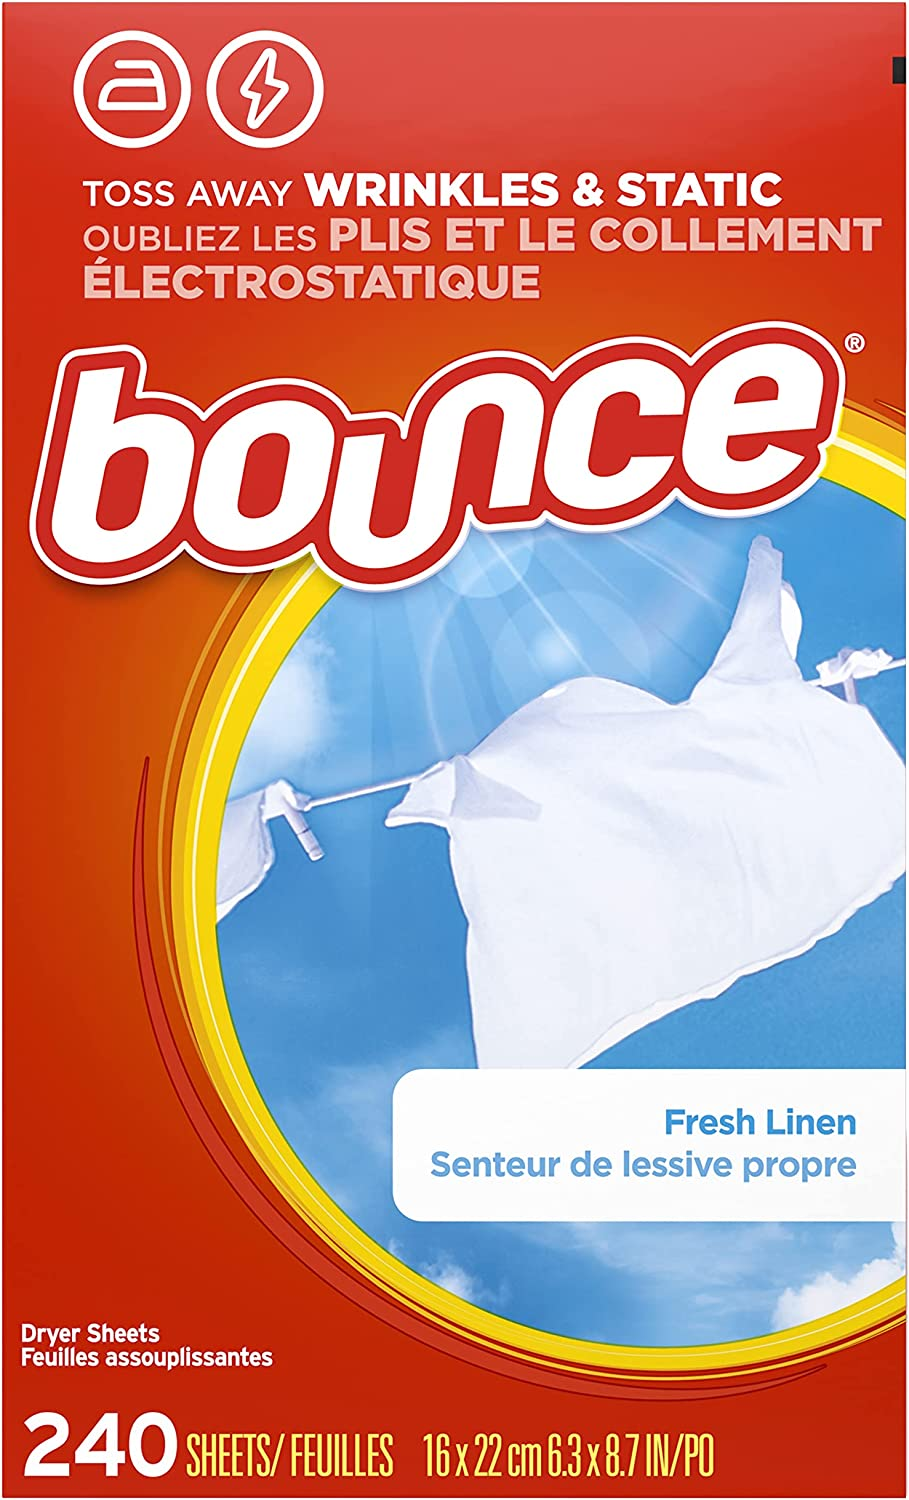 Bounce Fresh Linen Scented Fabric Softener Dryer Sheets: 240 Count! As low as .81 (REG: .99) at Amazon!